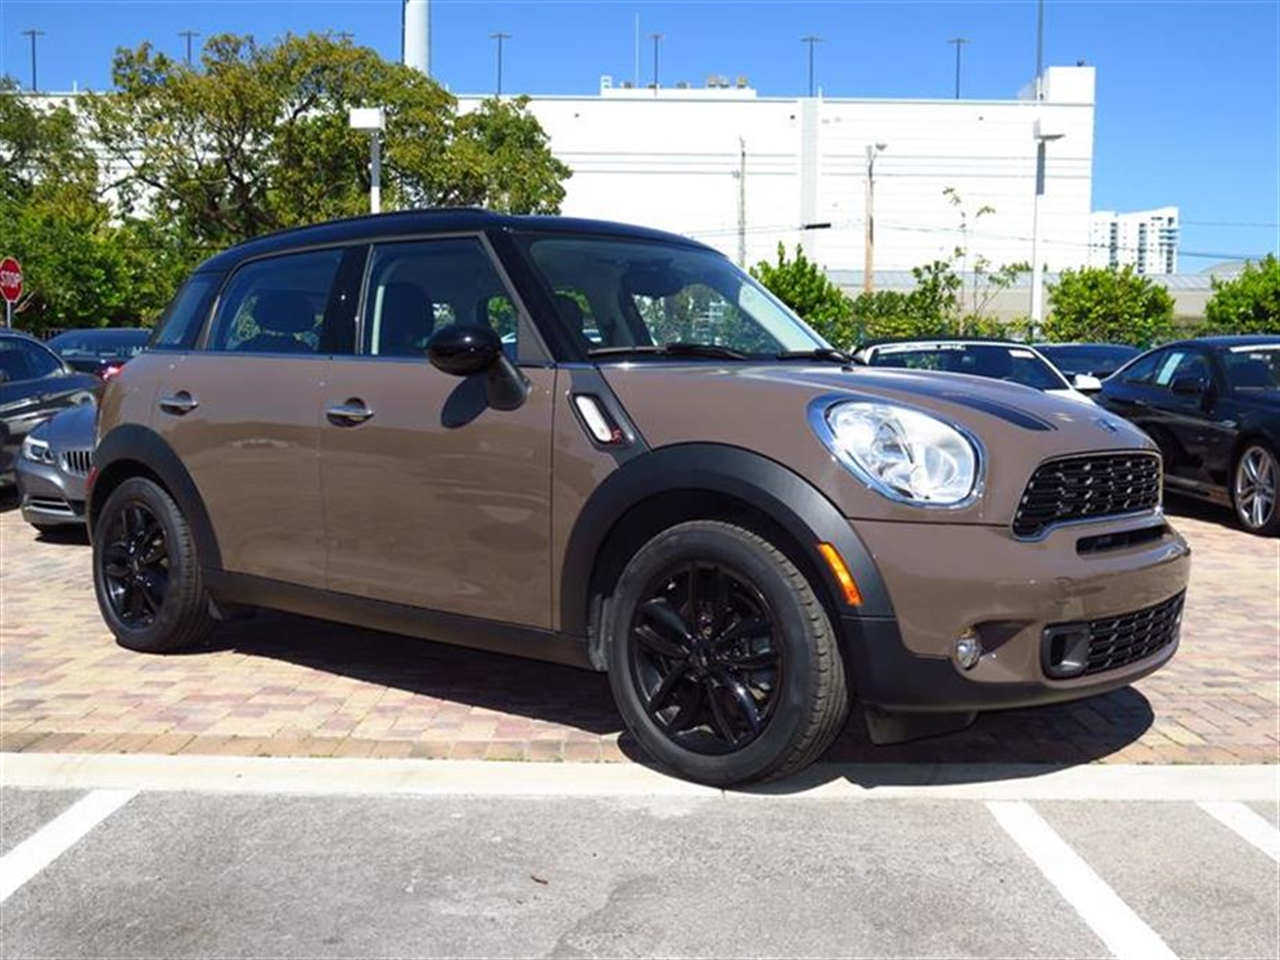 2012 MINI COOPER S COUNTRYMAN FWD 4dr S 30713 miles 2 front cup holders 3 12V pwr outlets 1